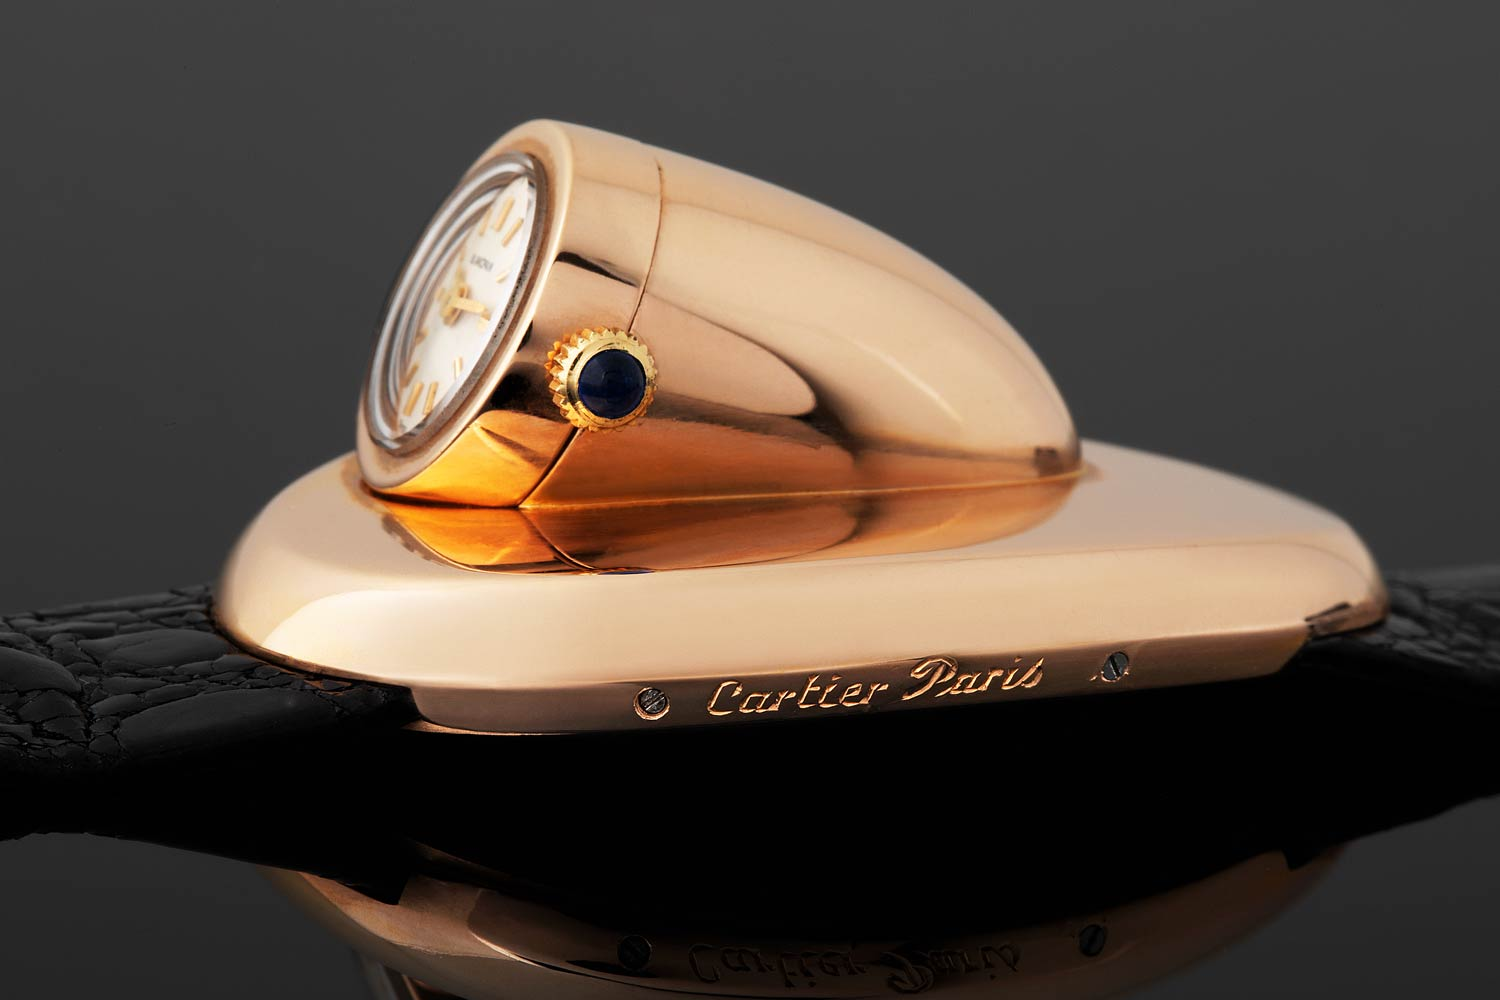 An unique prototype Cartier Driver's watch during late 1960's